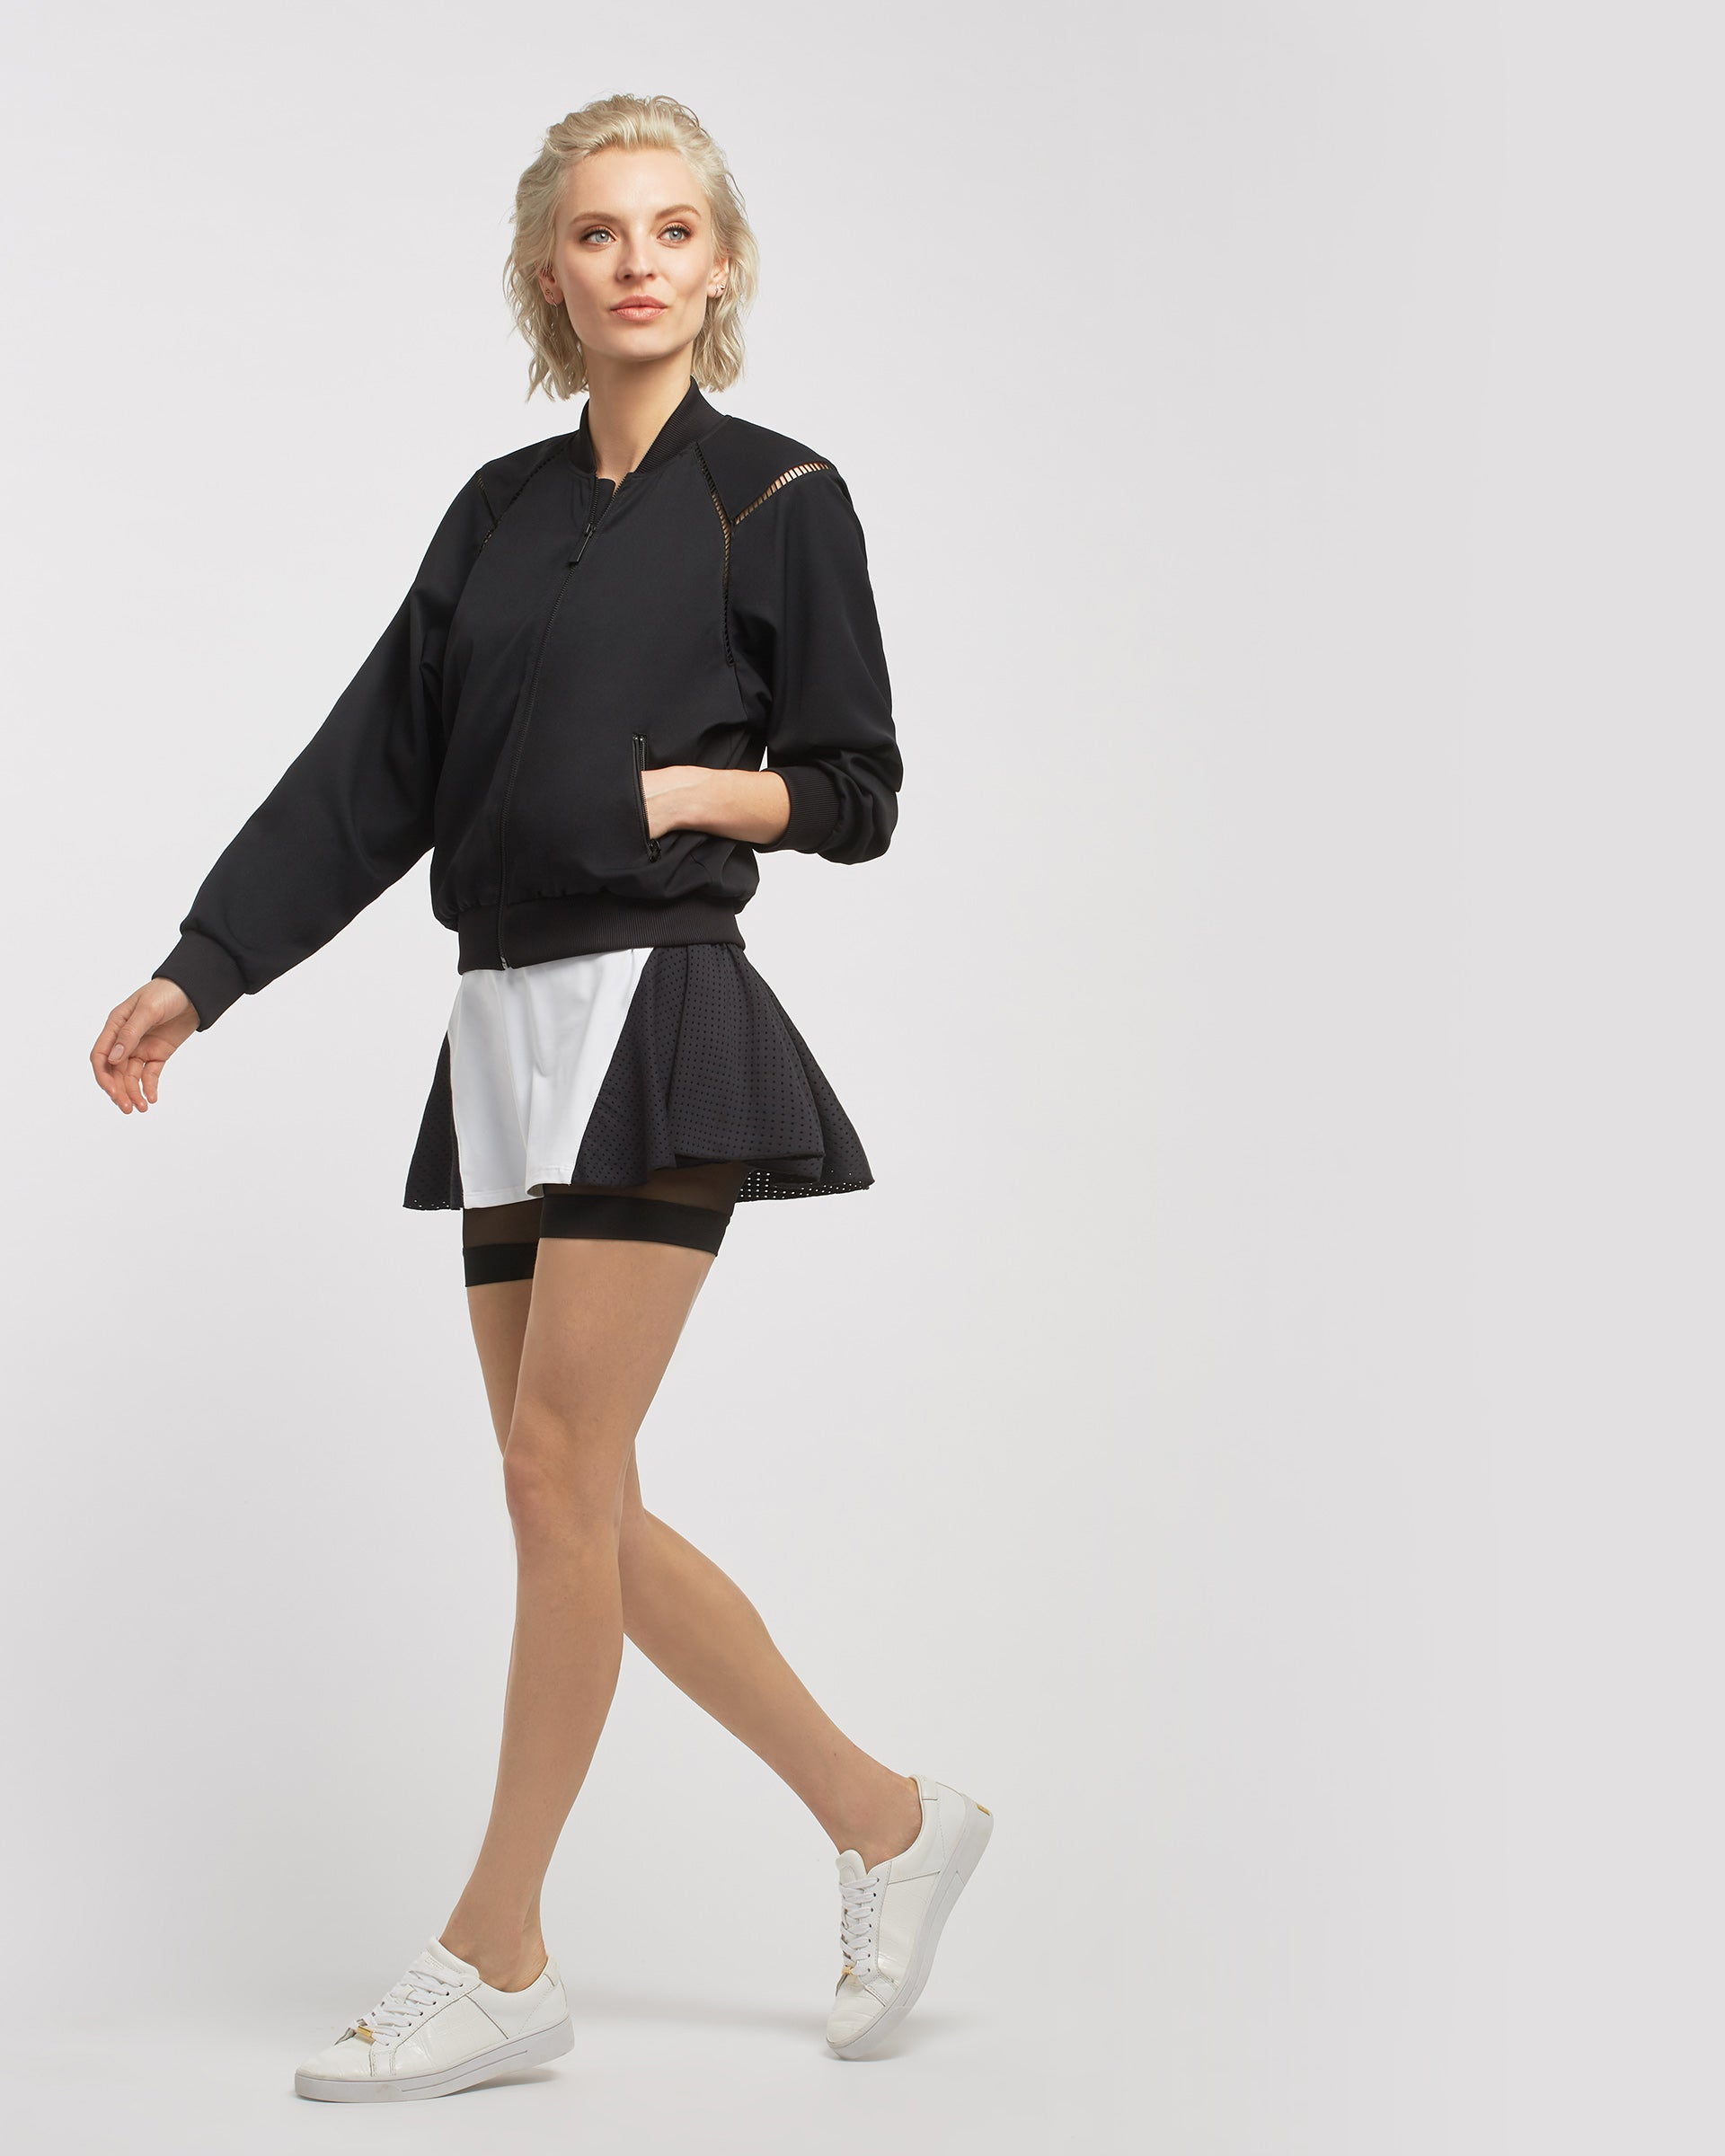 1-love-tennis-jacket-black